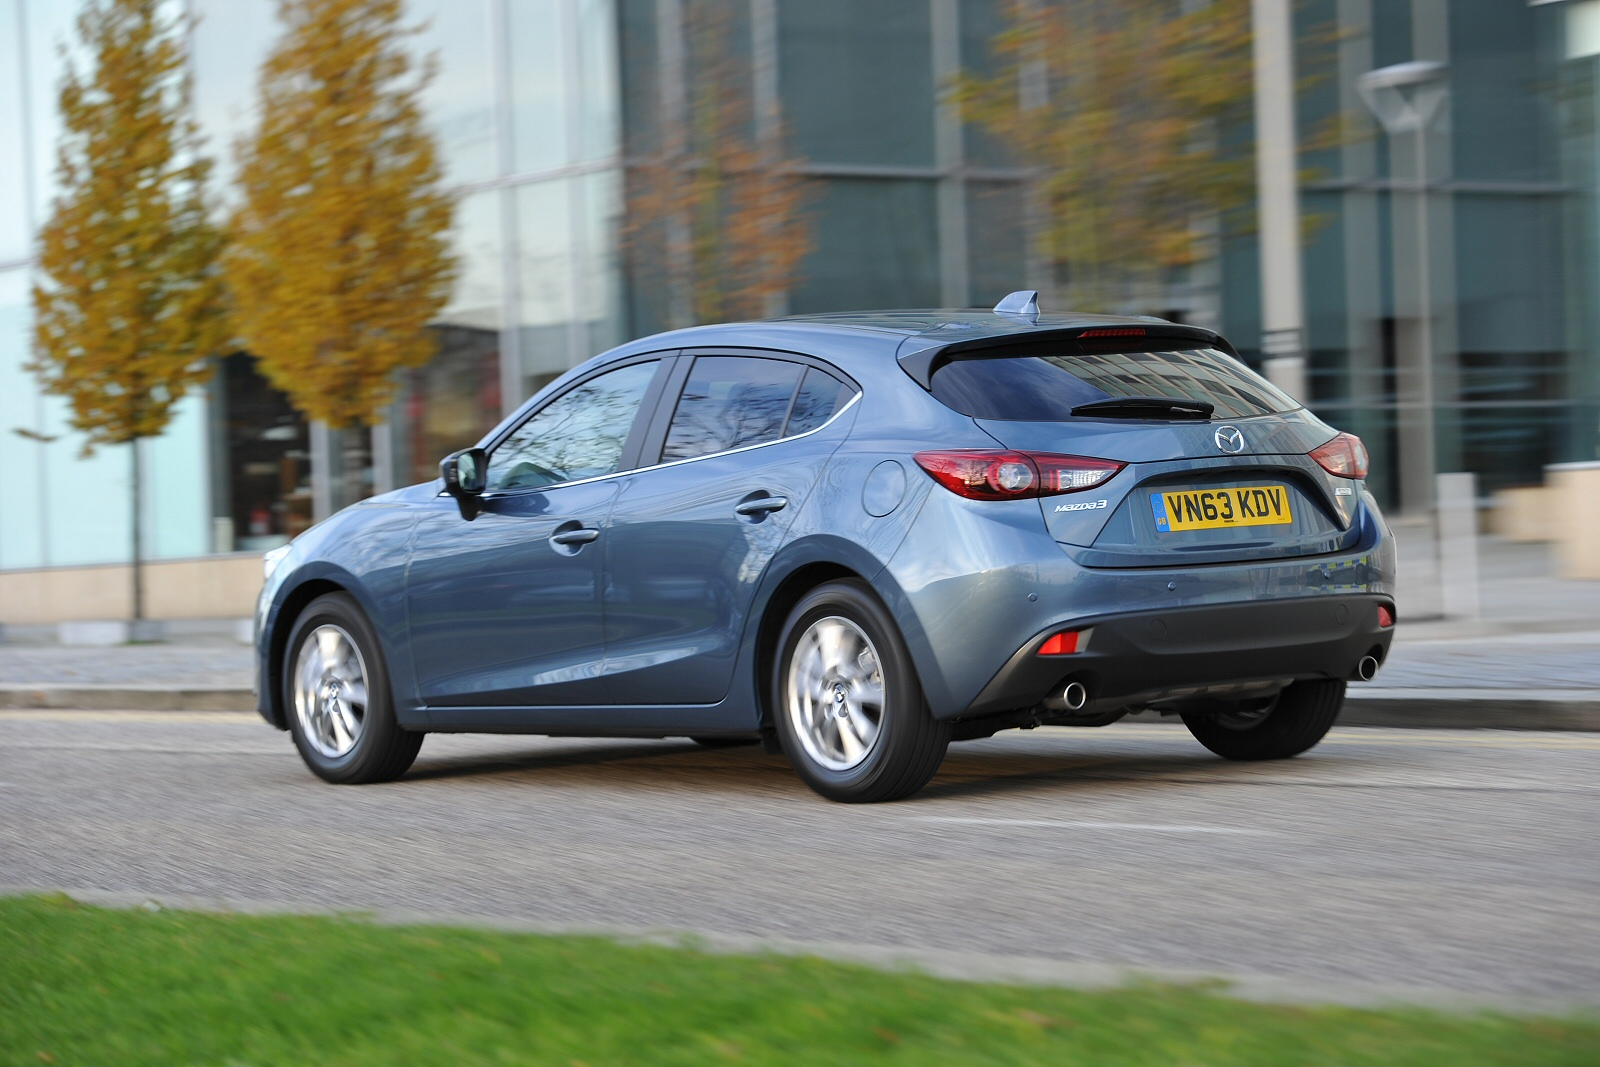 new mazda 3 1 5d se nav 5dr diesel hatchback for sale macklin motors. Black Bedroom Furniture Sets. Home Design Ideas